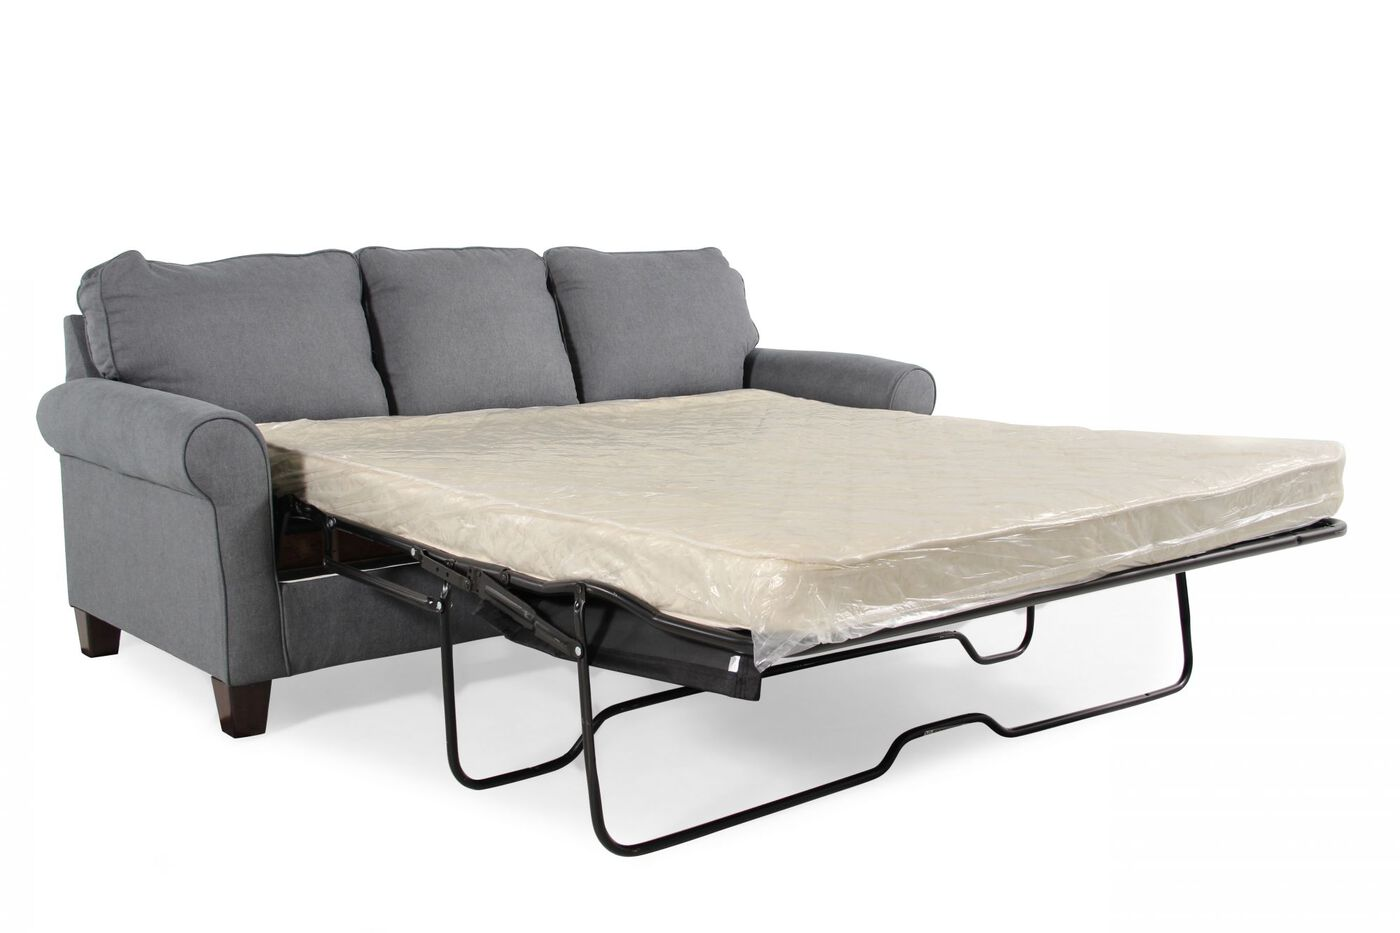 Contemporary Queen Sleeper Sofa in Denim Blue Mathis  : ASH 2710139 1 from www.mathisbrothers.com size 1400 x 933 jpeg 75kB